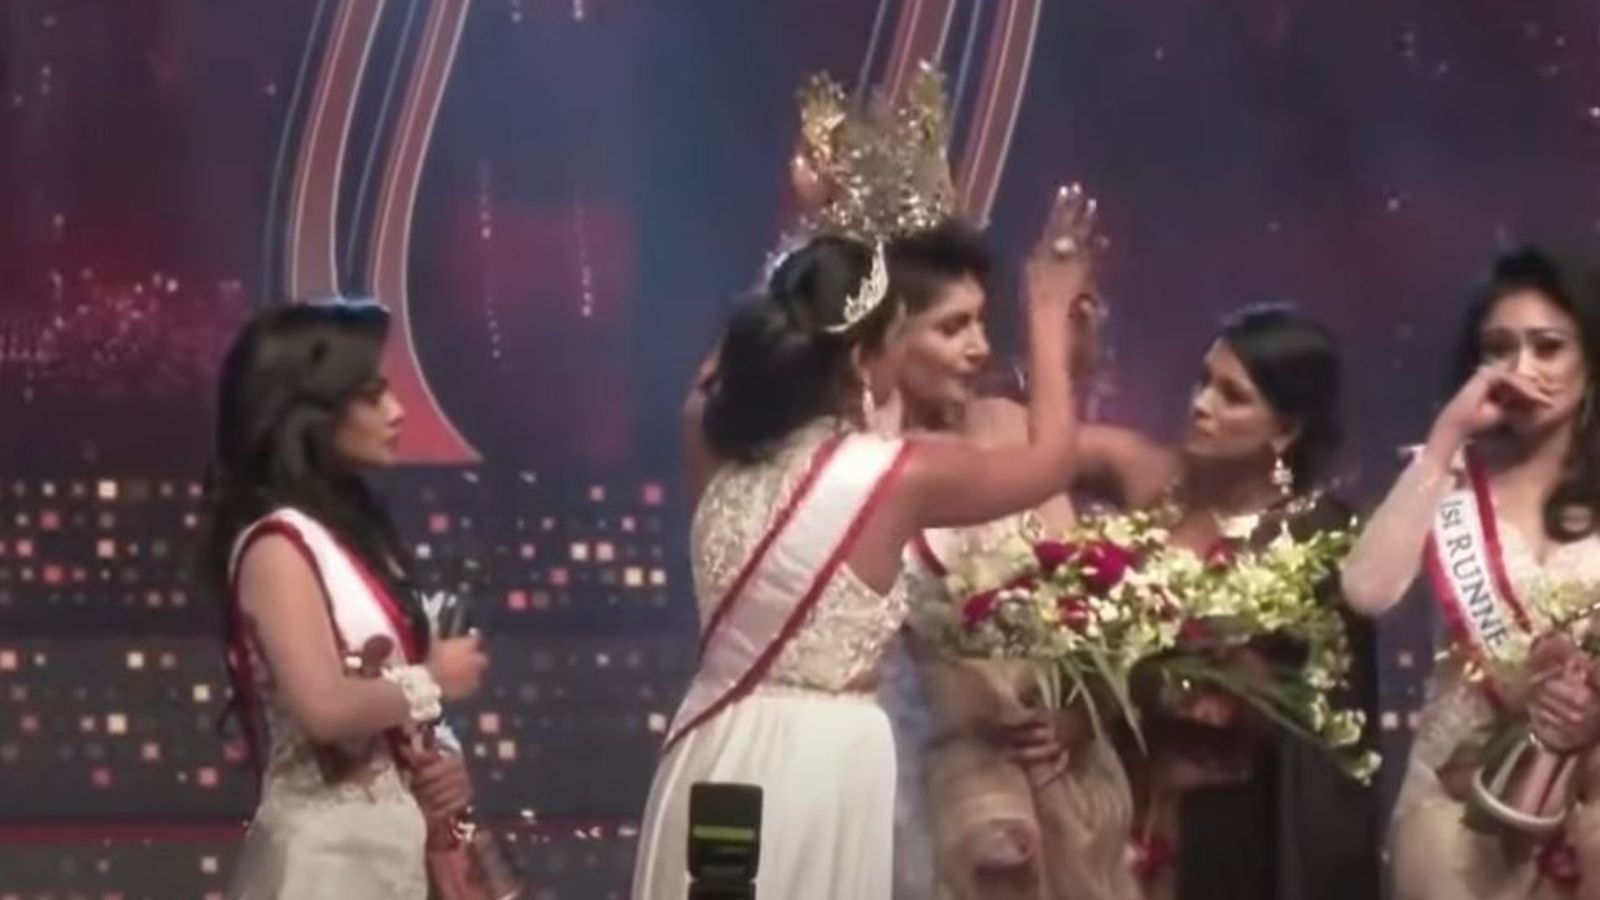 Watch Mrs. Sri Lanka lose her beauty queen crown after it's removed from her head on stage by Mrs. World over divorce claims (video)